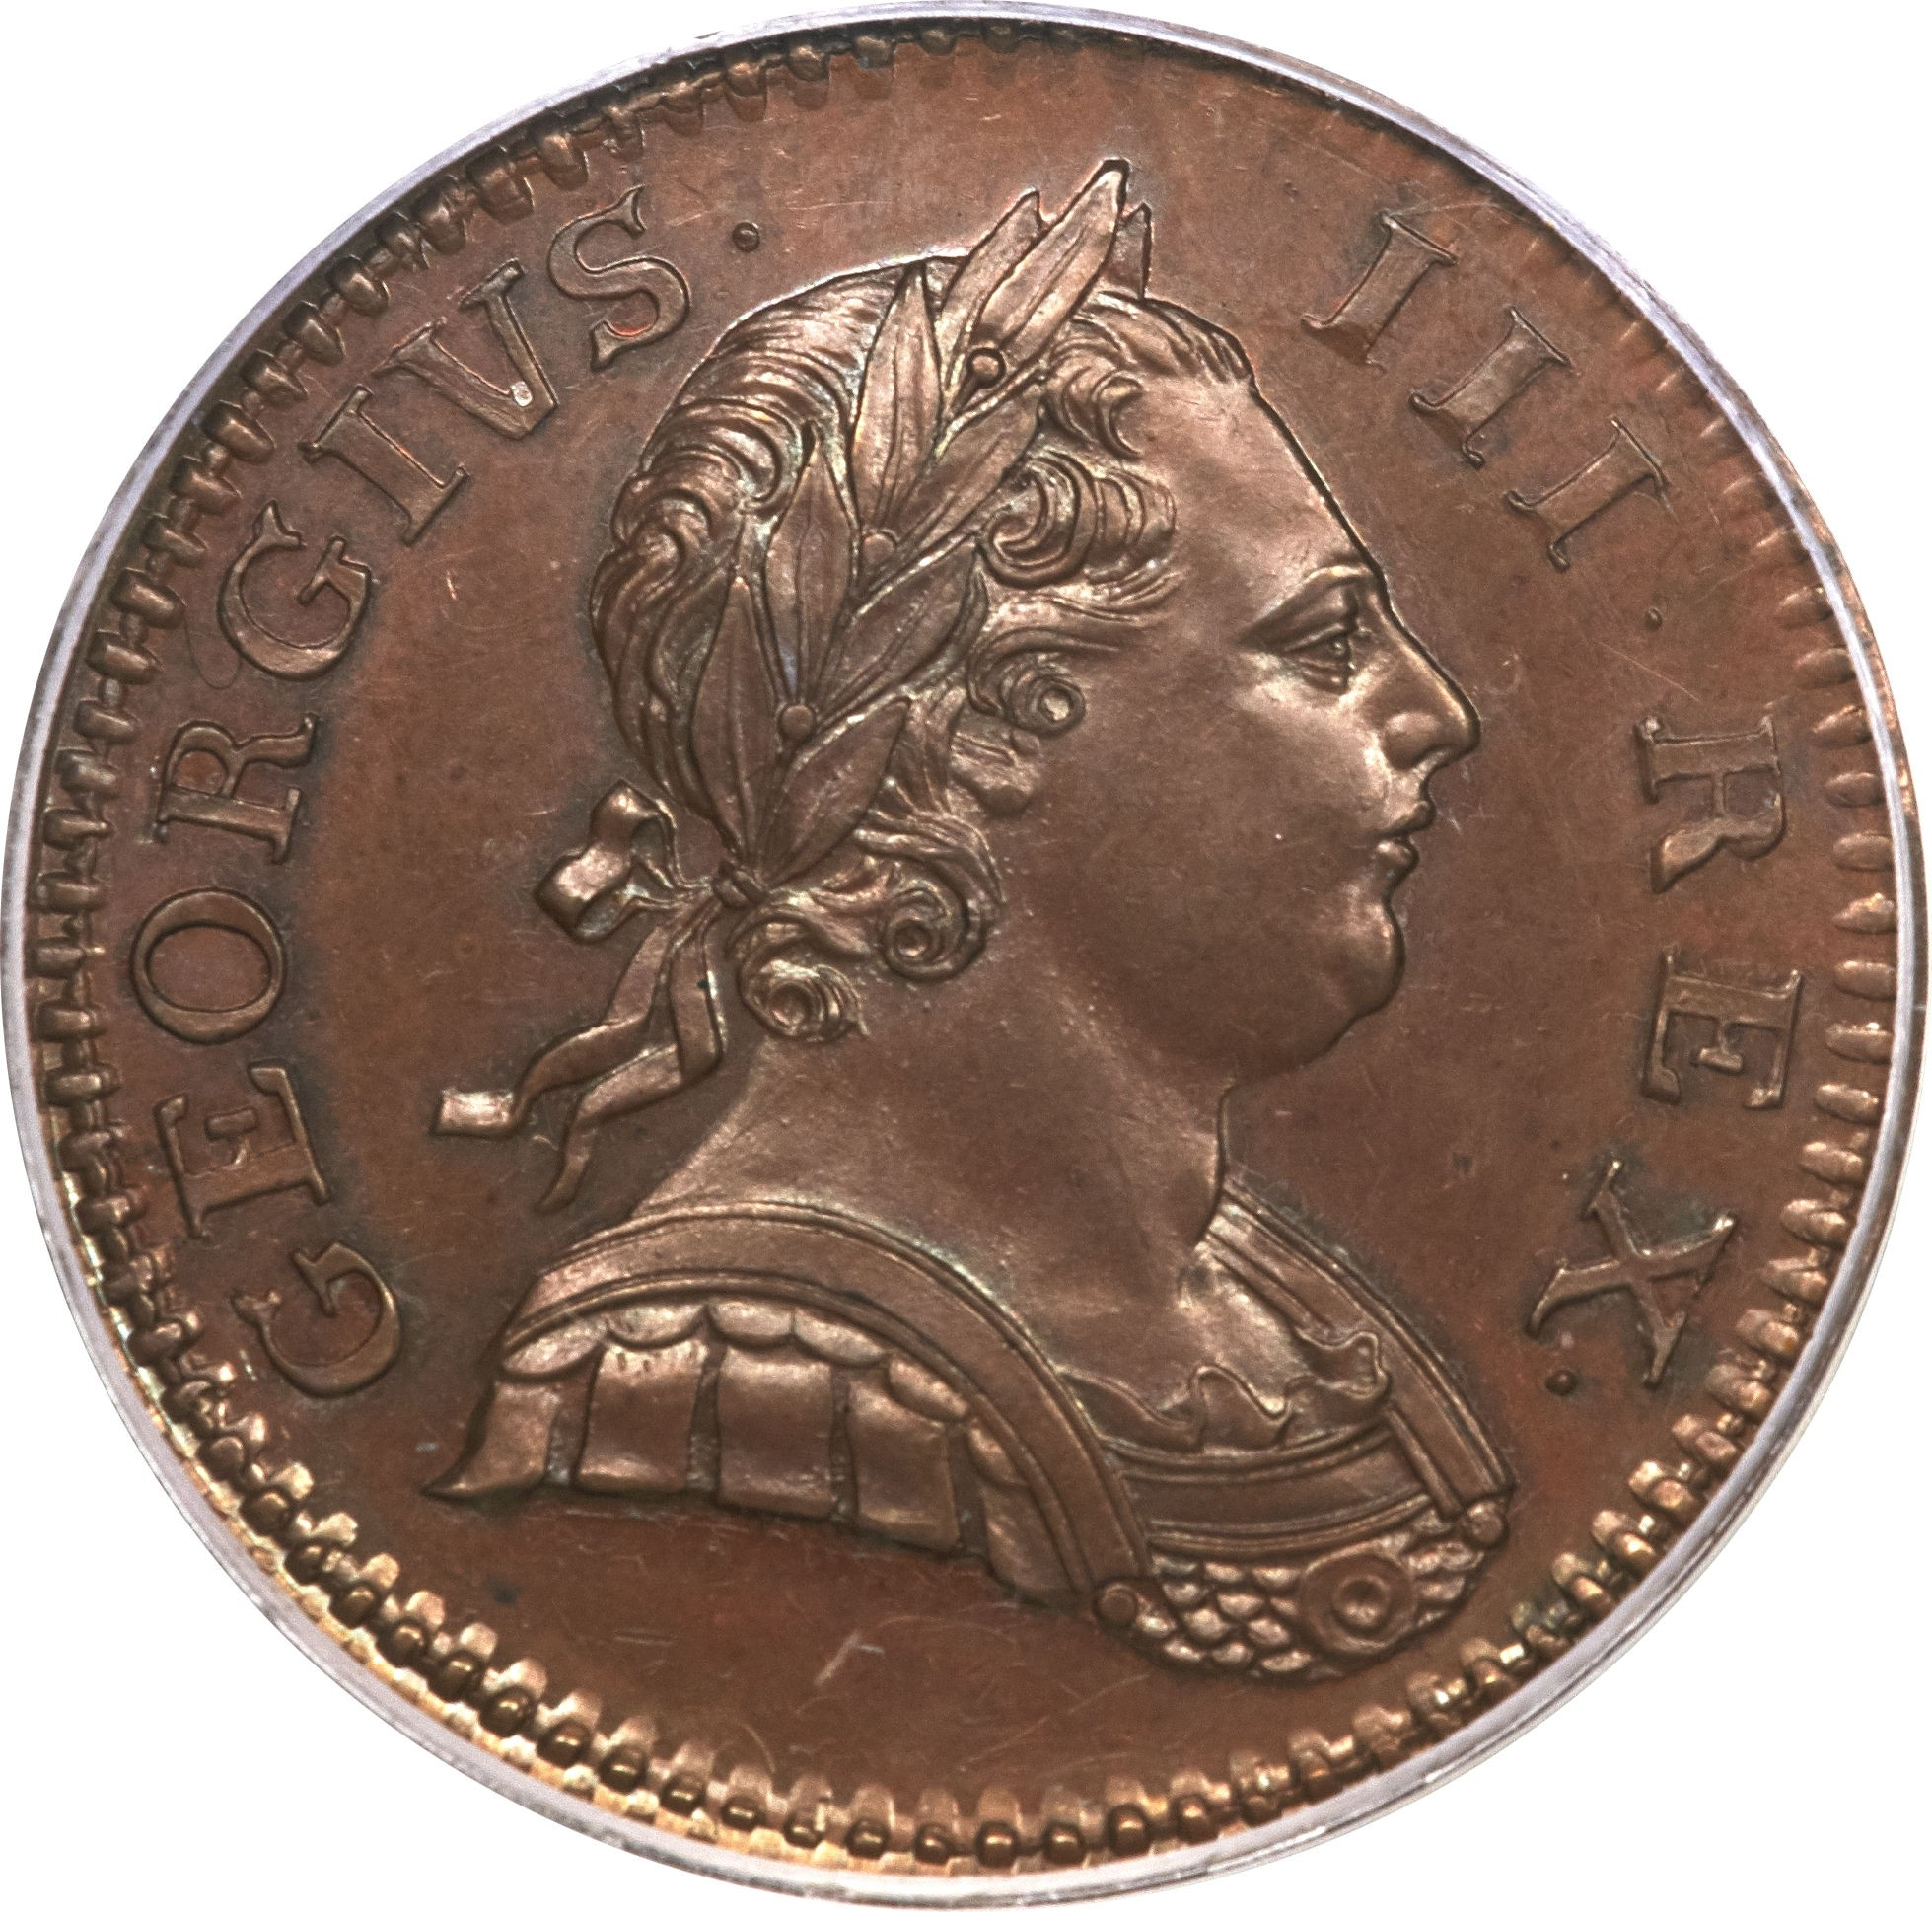 British ½ Penny (1770-1775 George III)